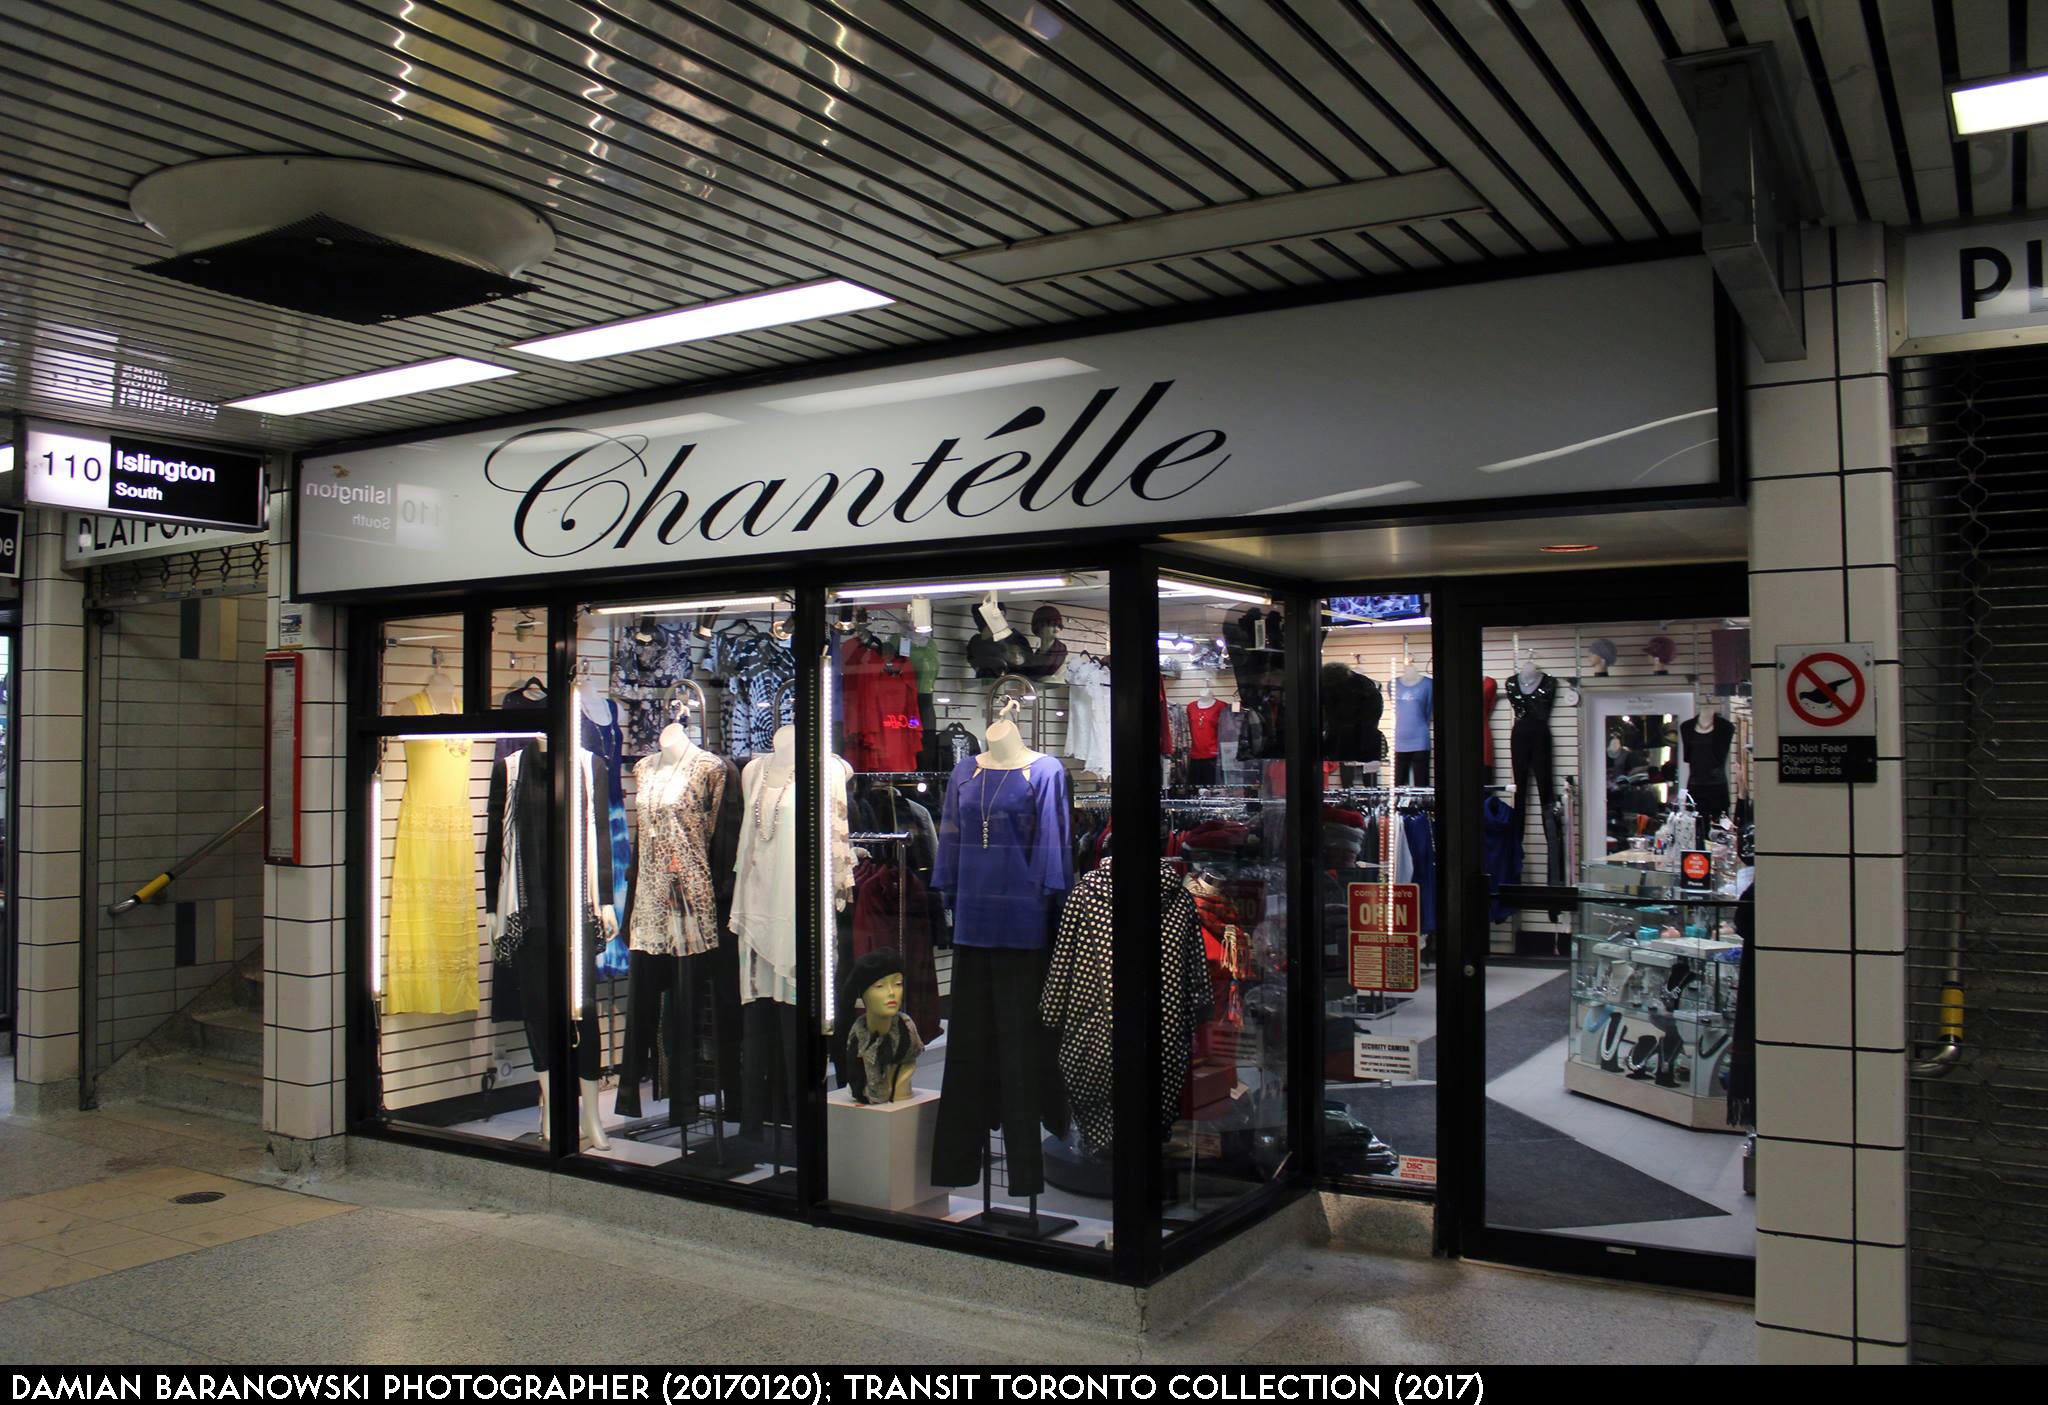 Danforth clothing stores